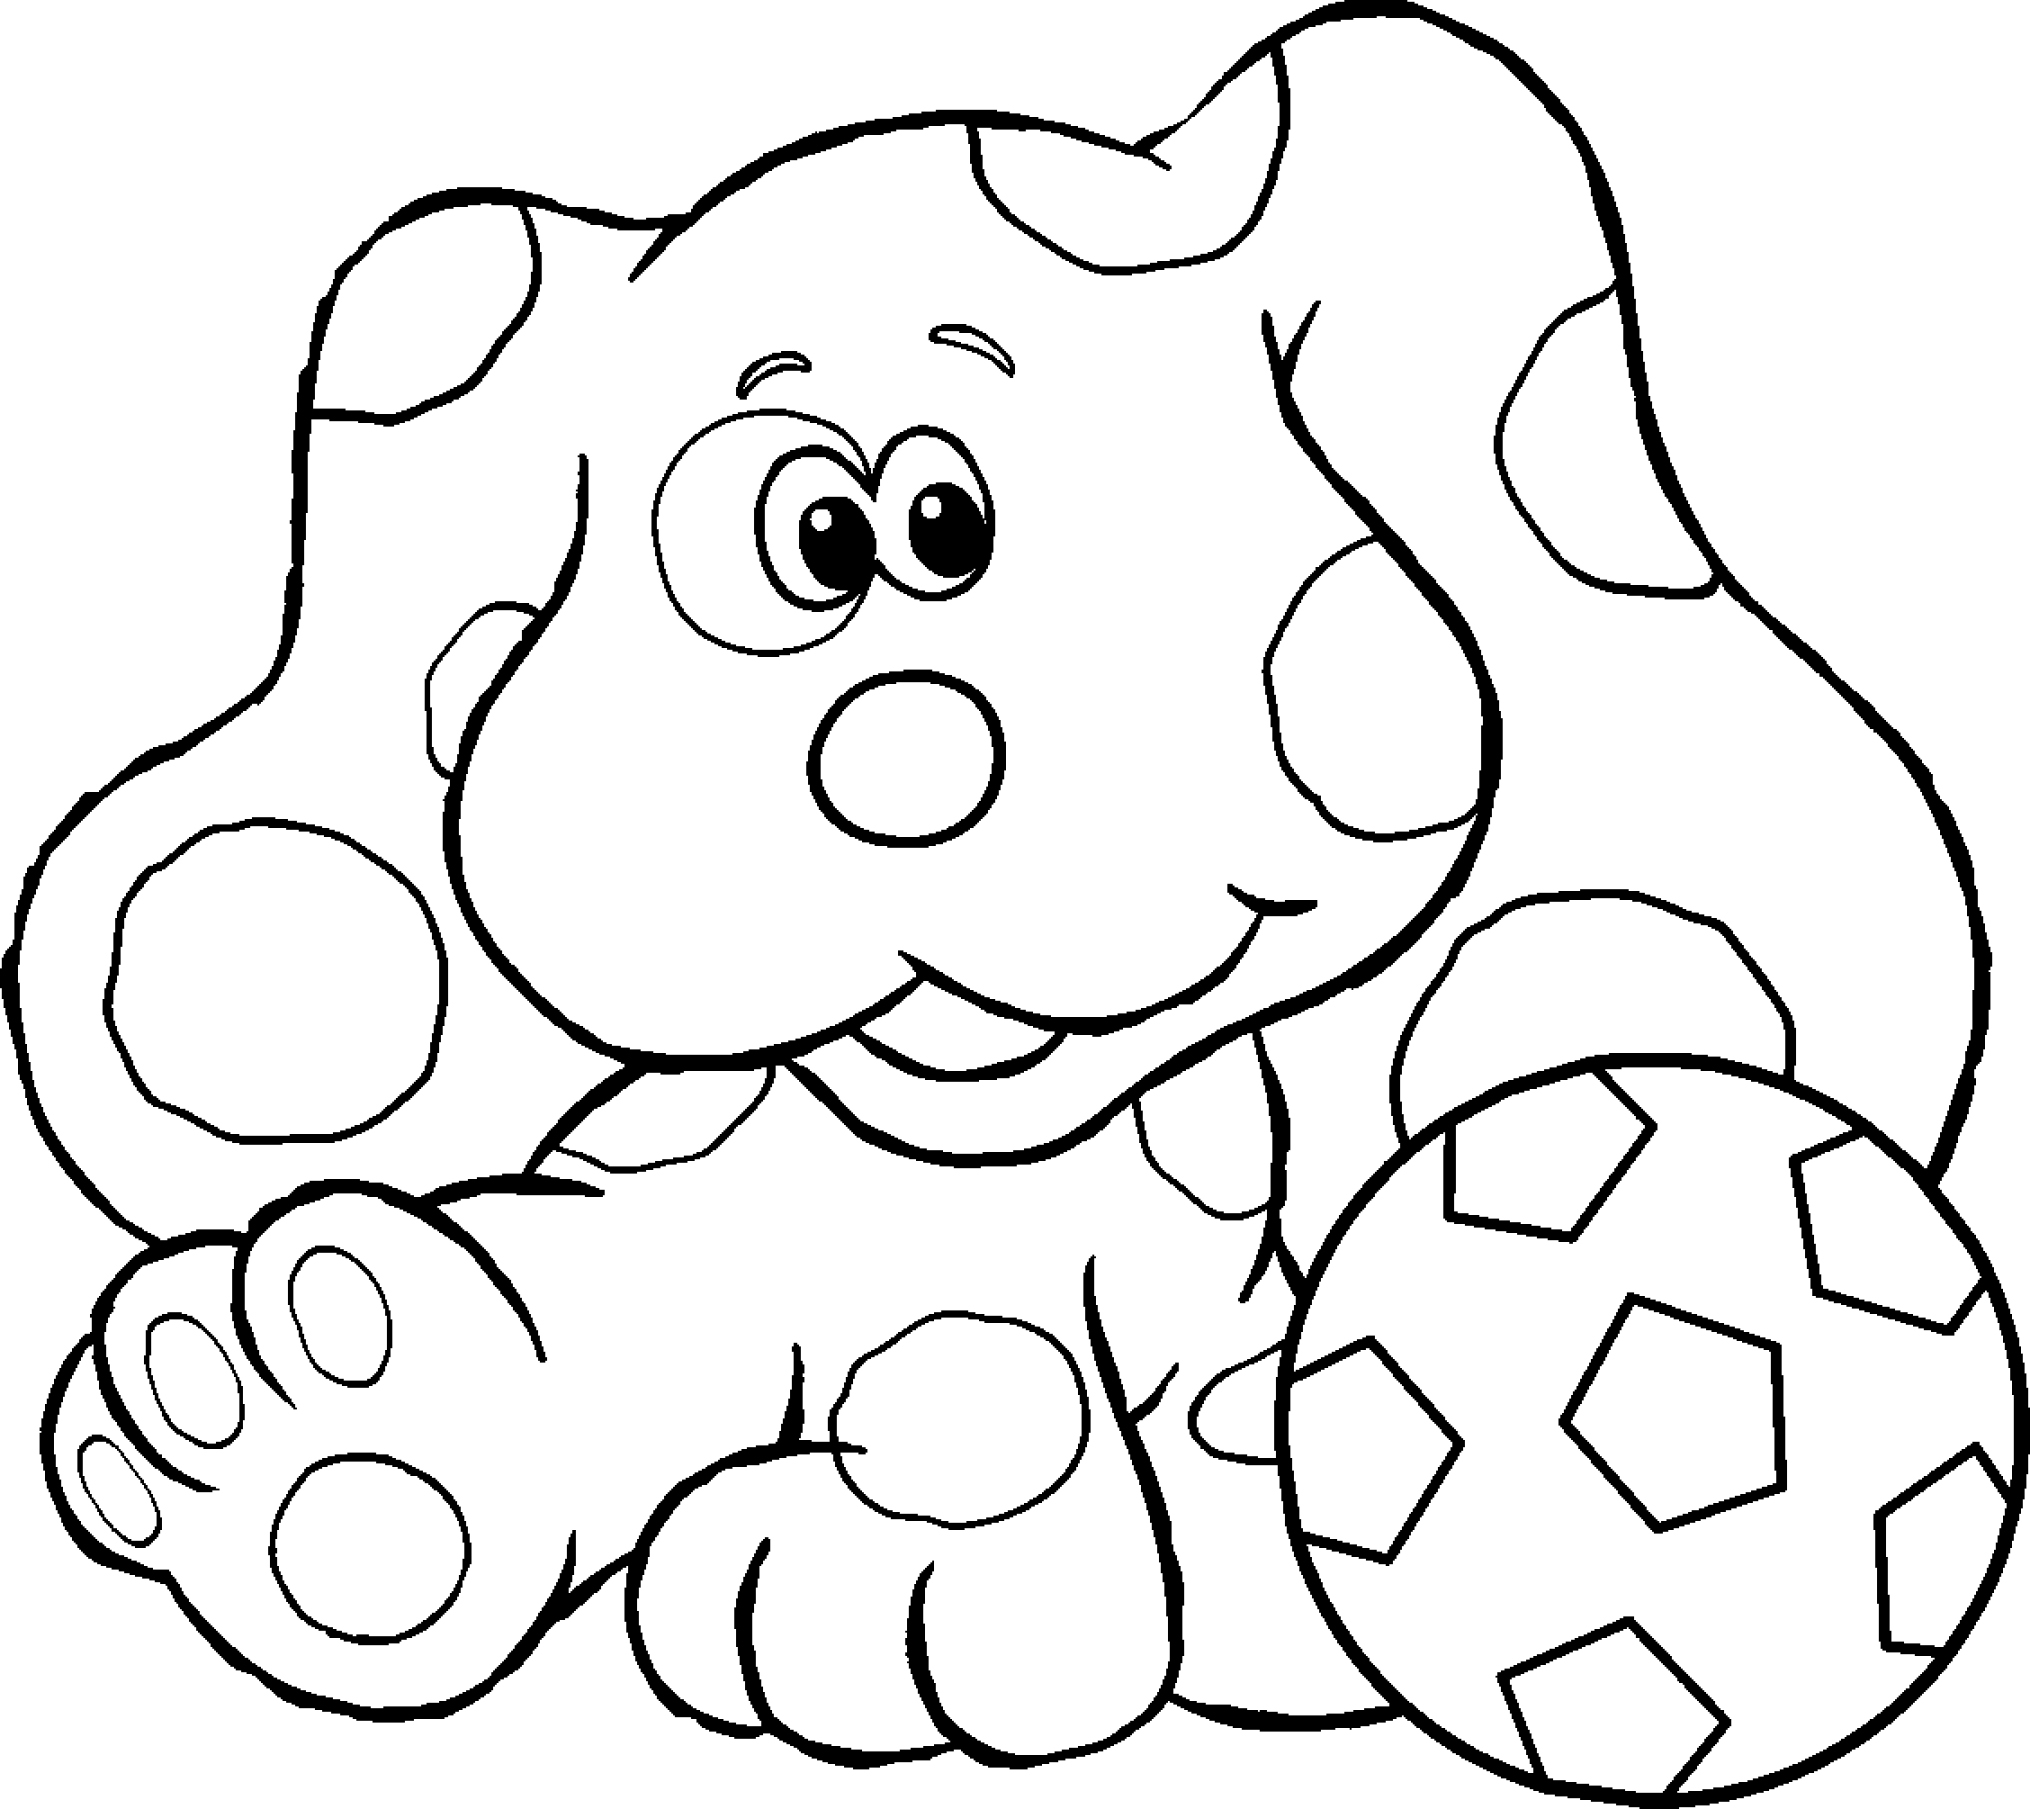 blues clues coloring sheets